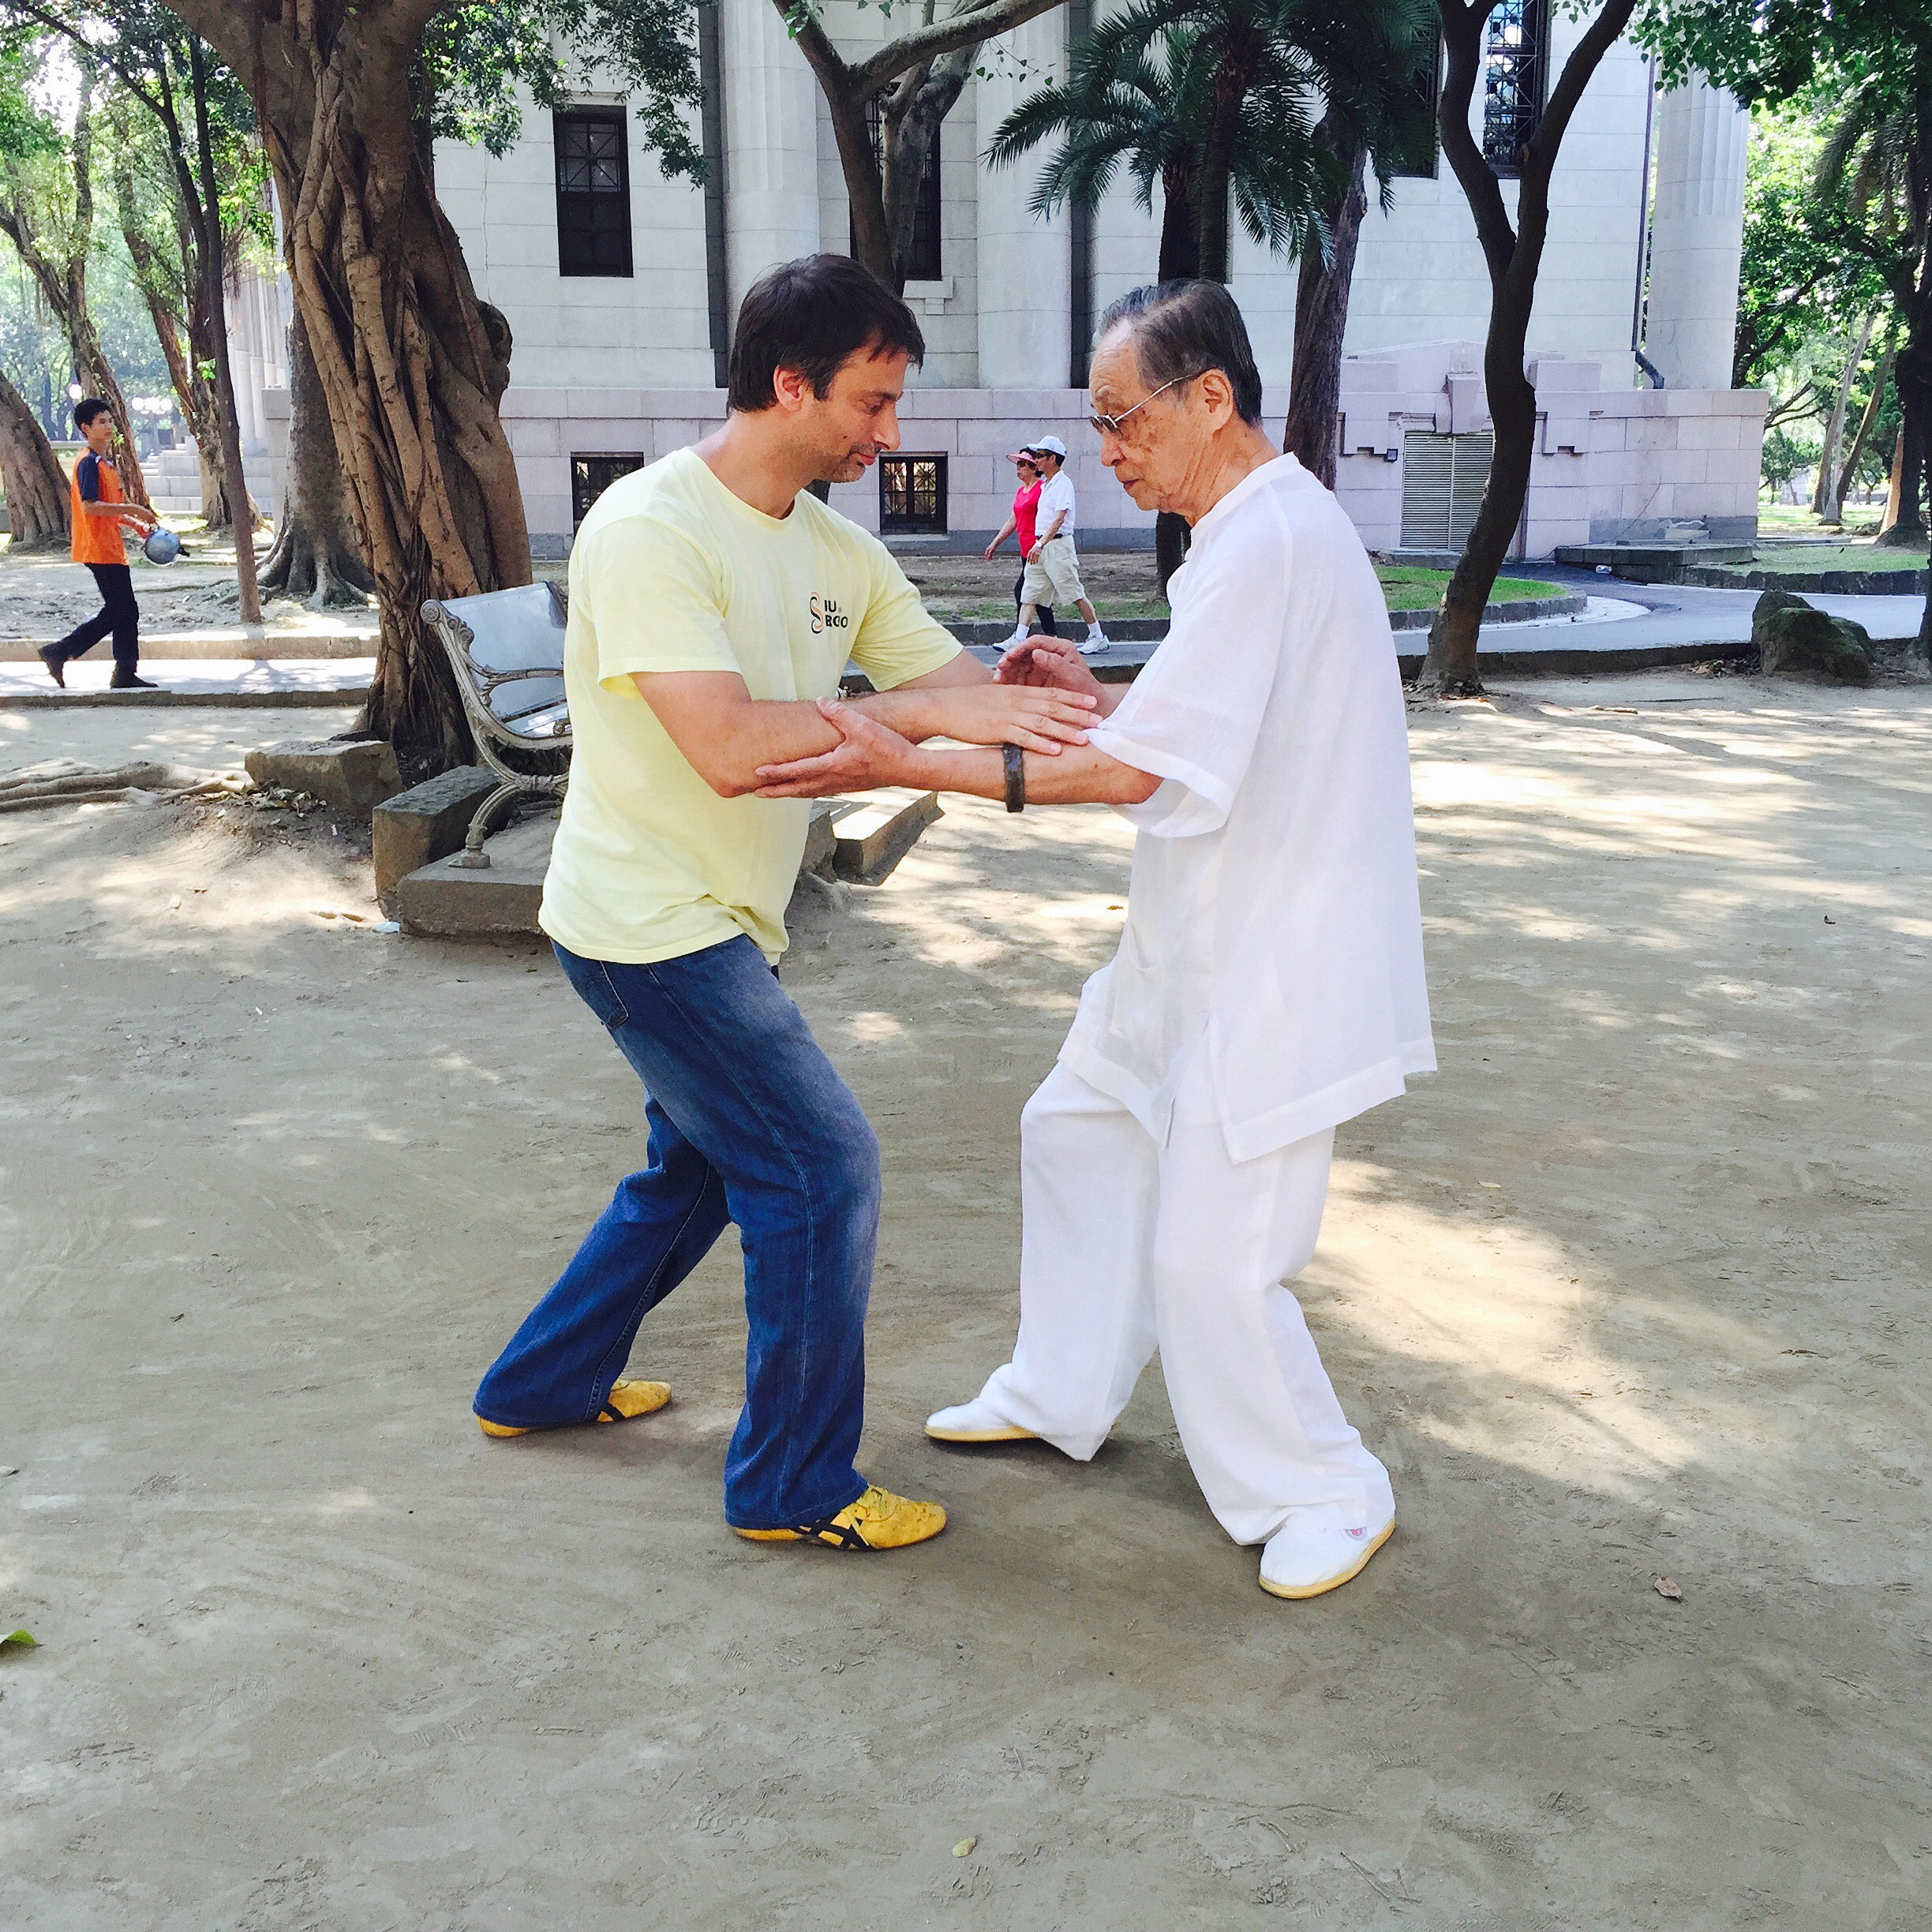 Training with Sifu Song Fa Dong